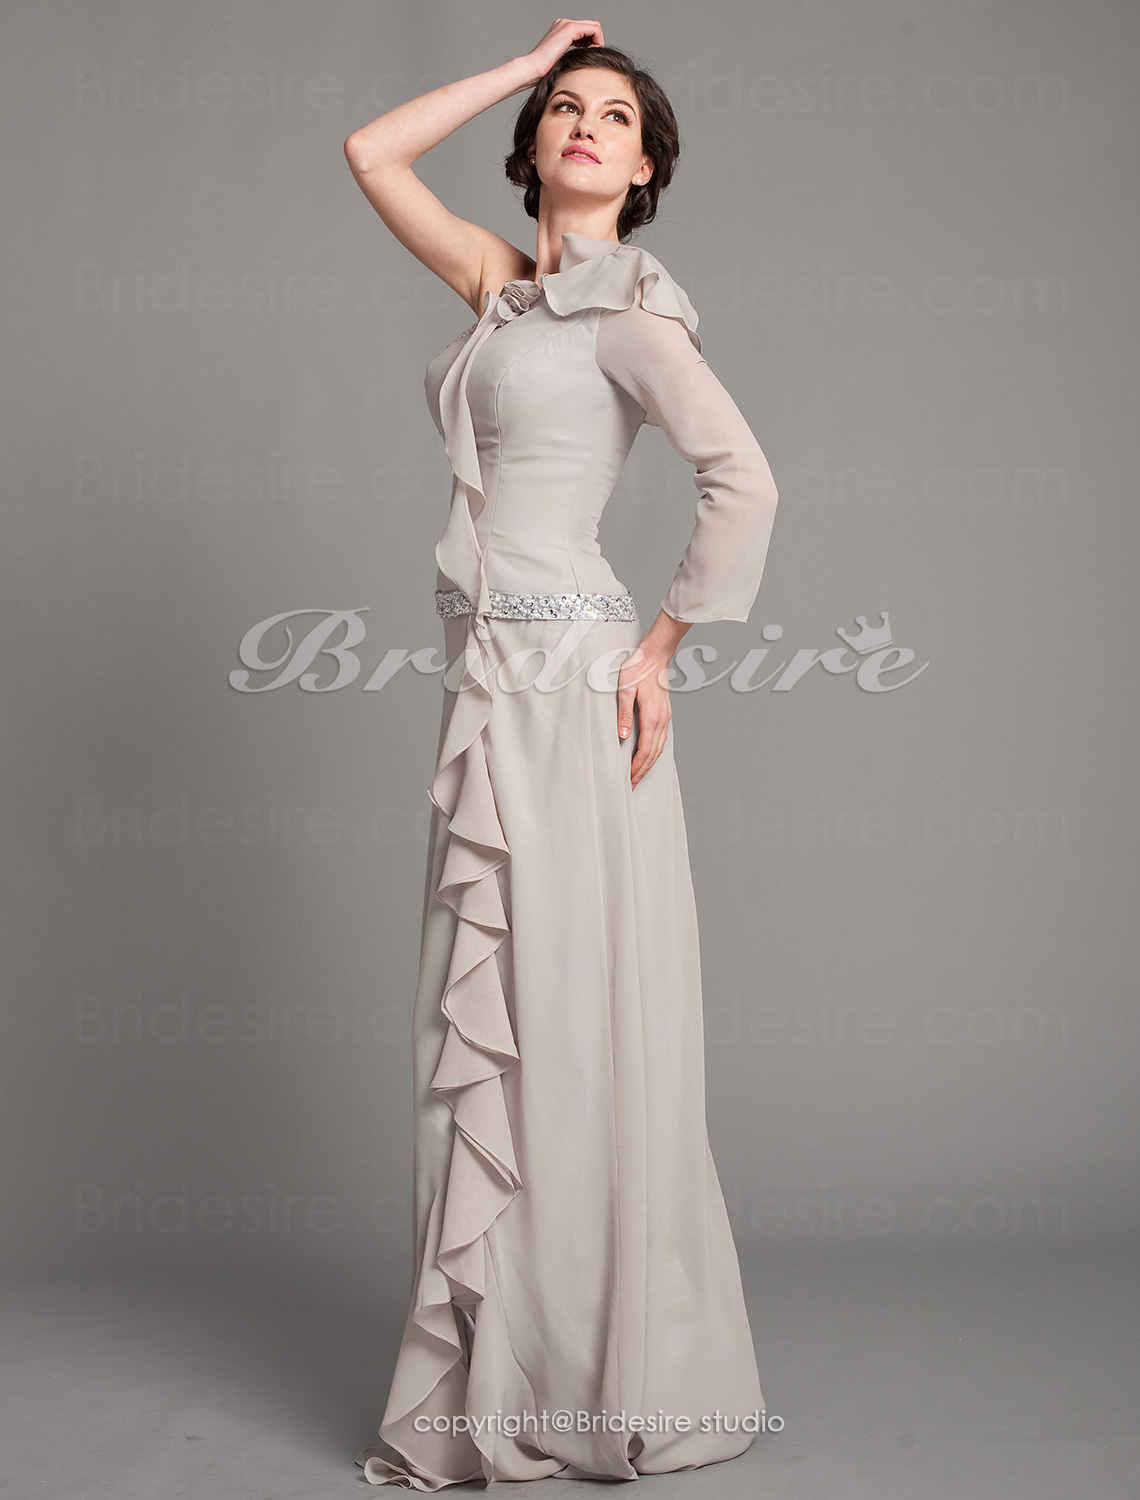 Sheath/Column Stretch Satin And Chiffon Floor-length One Shoulder Mother Of The Bride Dress